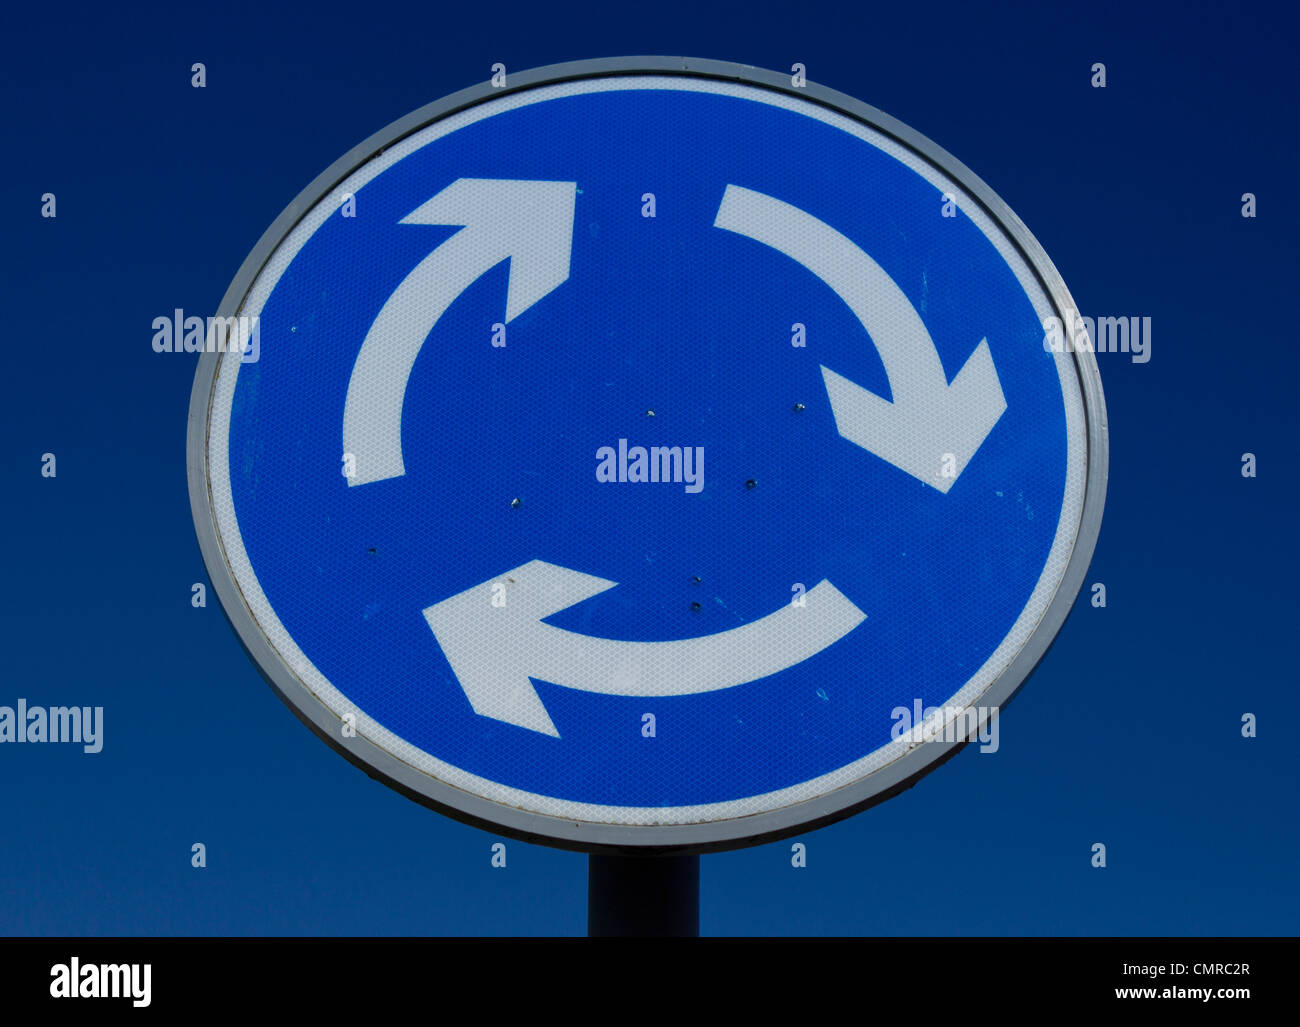 Roundabout street sign - Stock Image